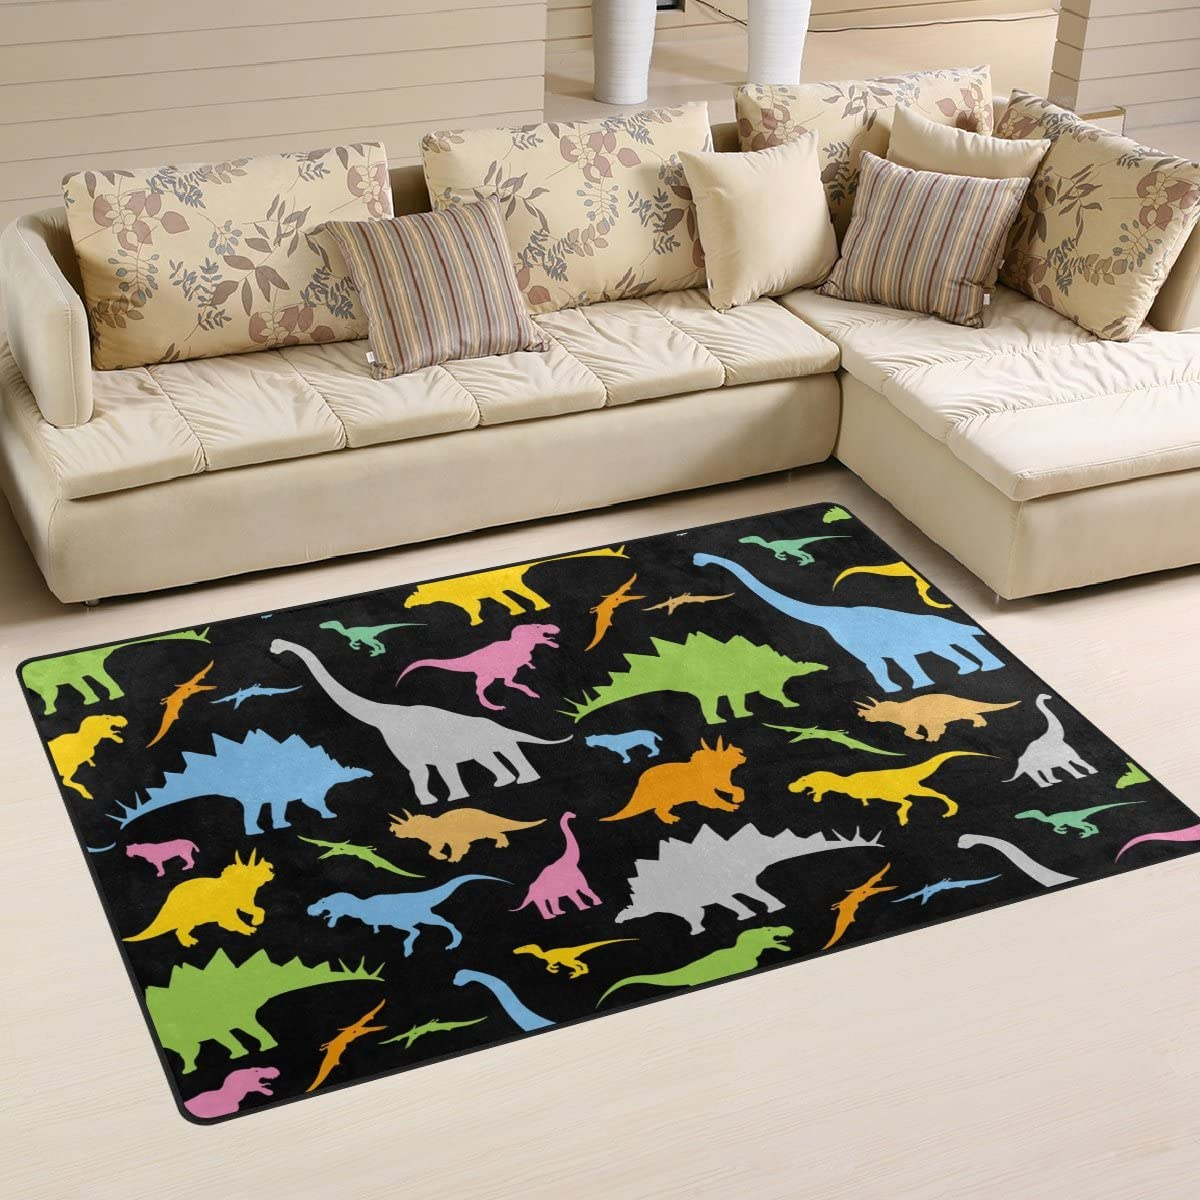 WOZO Colorful Dinosaur Black Area Rug Rugs Non-Slip Floor Mat Doormats Living Dining Room Bedroom Dorm 60 x 39 inches inches Home Decor